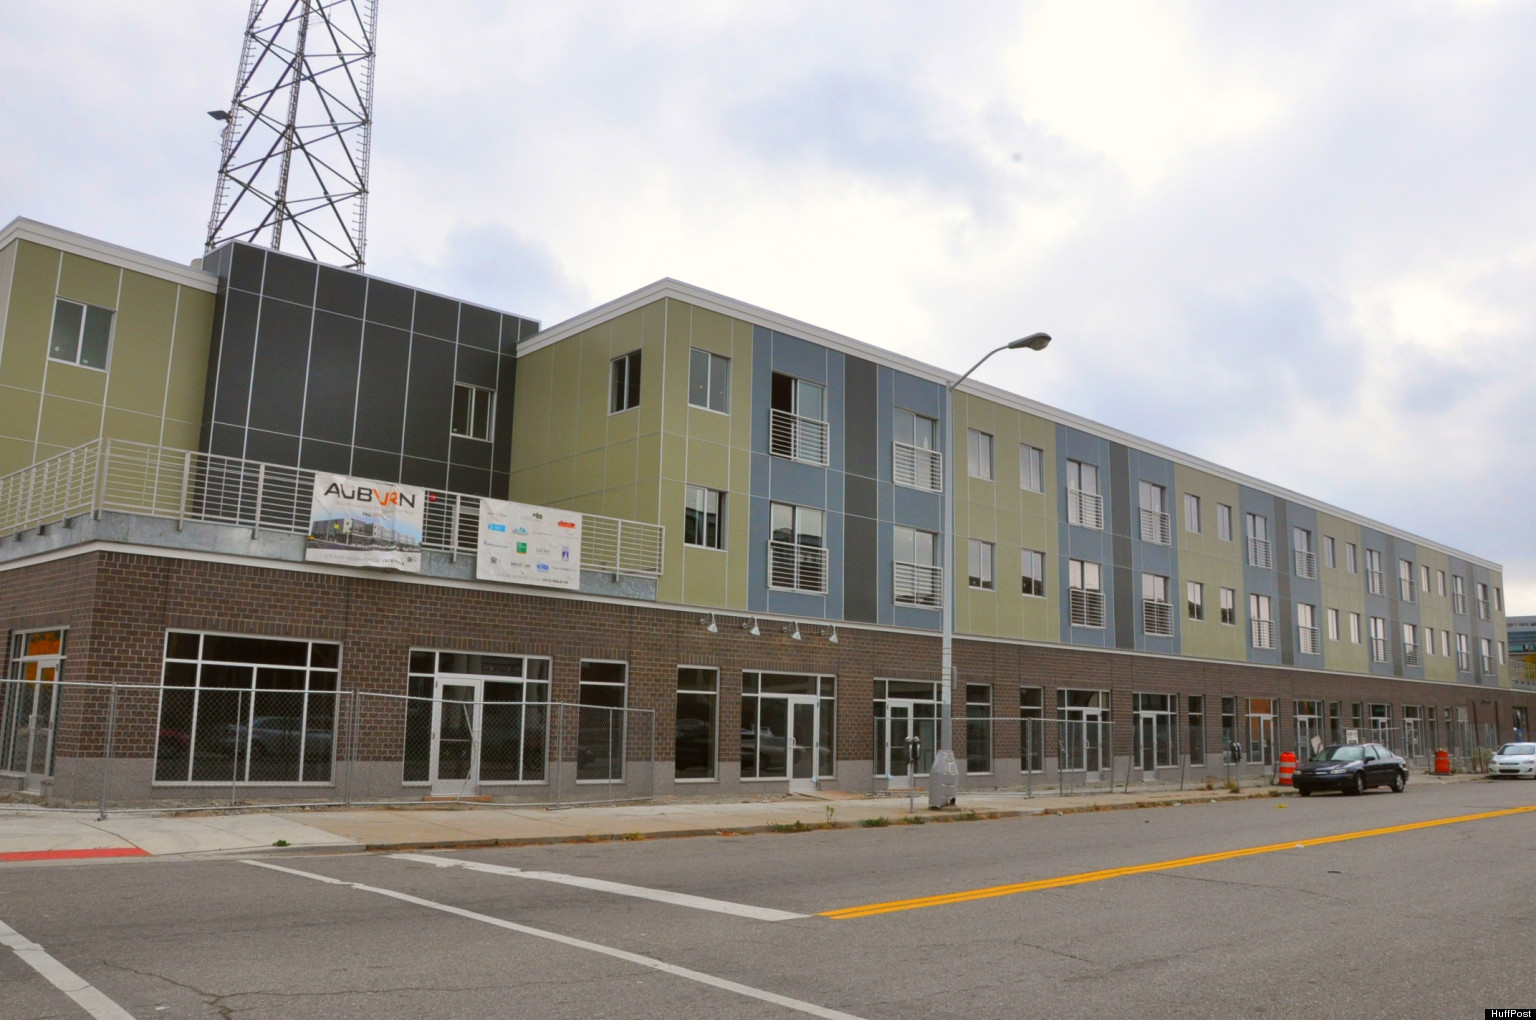 Auburn Building Will Open In Detroits Midtown Neighborhood With Apartments And 8 Retail Stores